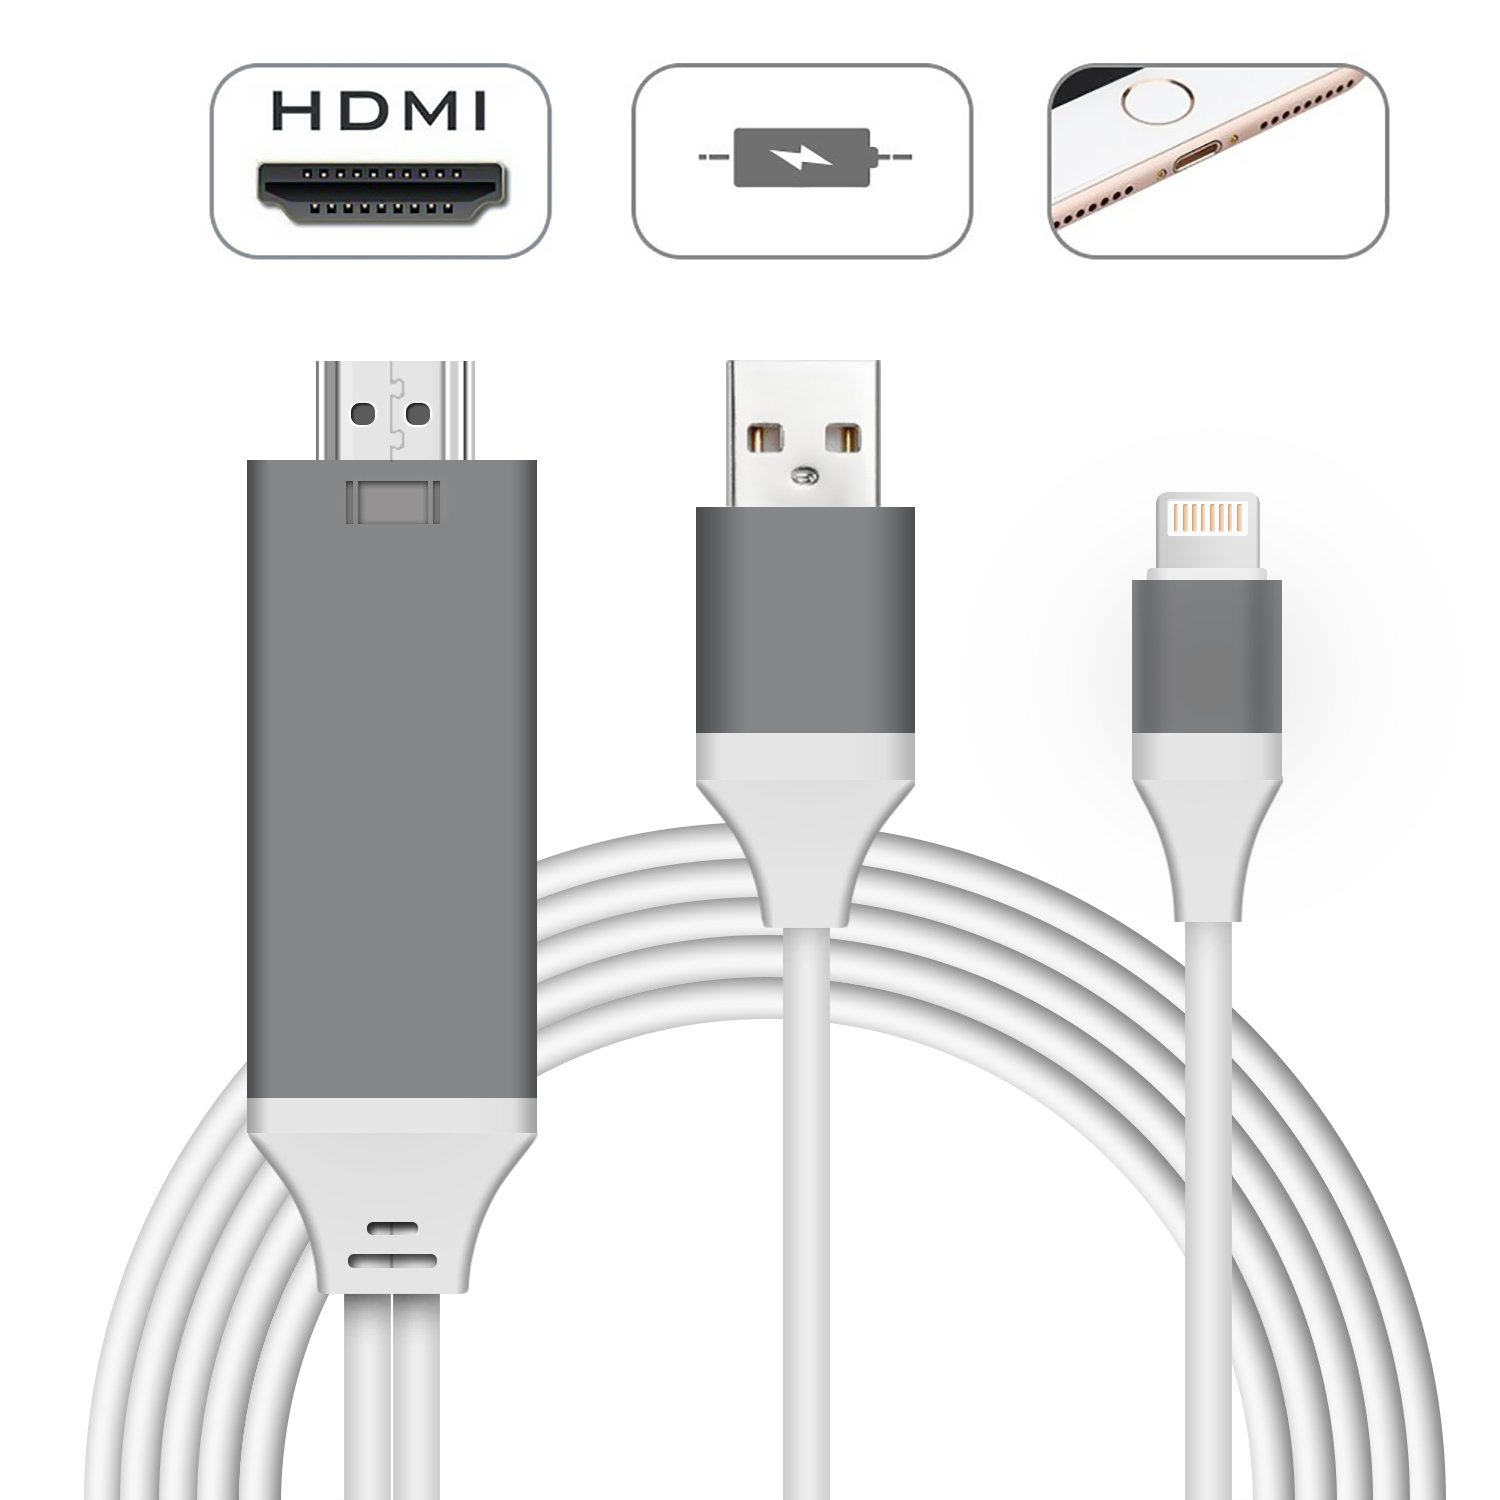 Compatible with iPad iPhone to HDMI Adapter Cable, Digital AV Adapter, Anlyso 6.6ft HDMI Adapter Cord Support 1080P HDTV Compatible with iPhone X 8 7 6 Plus 5s 5, iPad, iPod to TV Projector Monitor